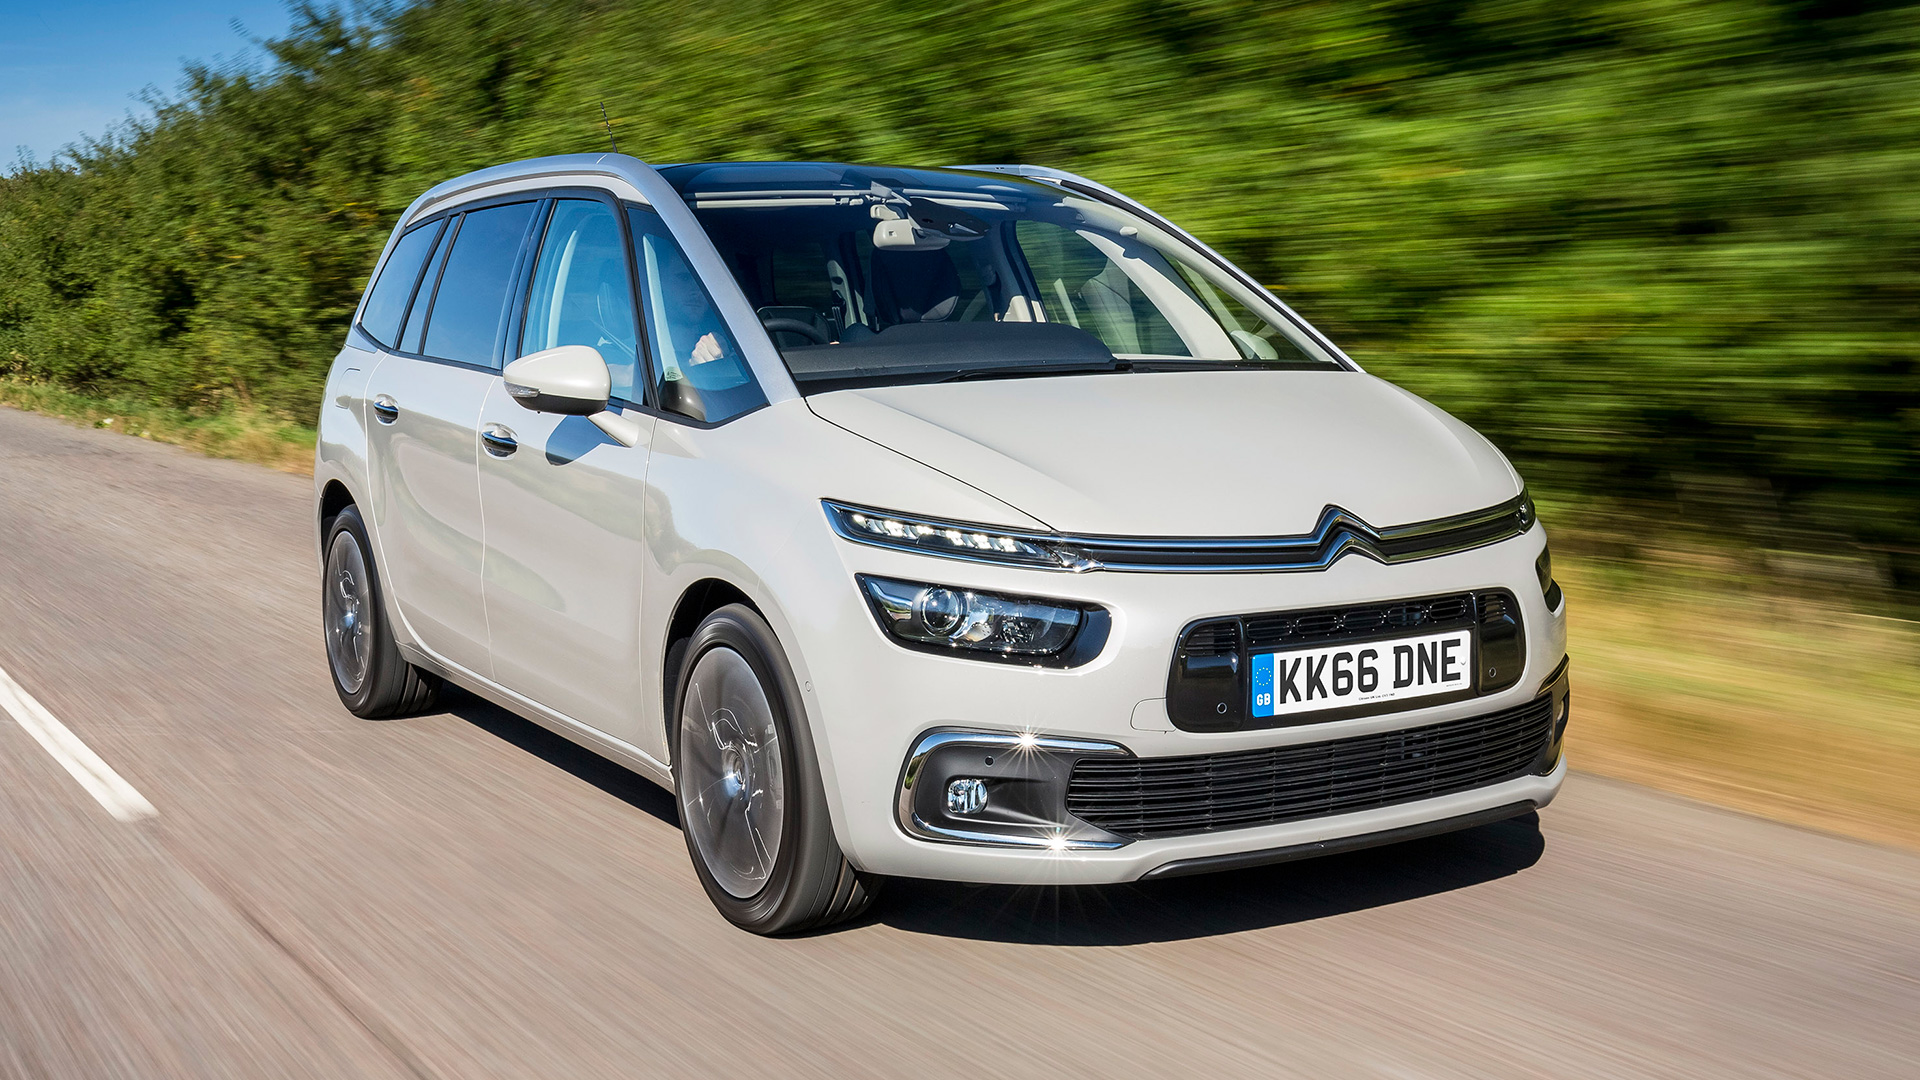 Citroen Grand C4 Picasso first drive review | Auto Trader UK